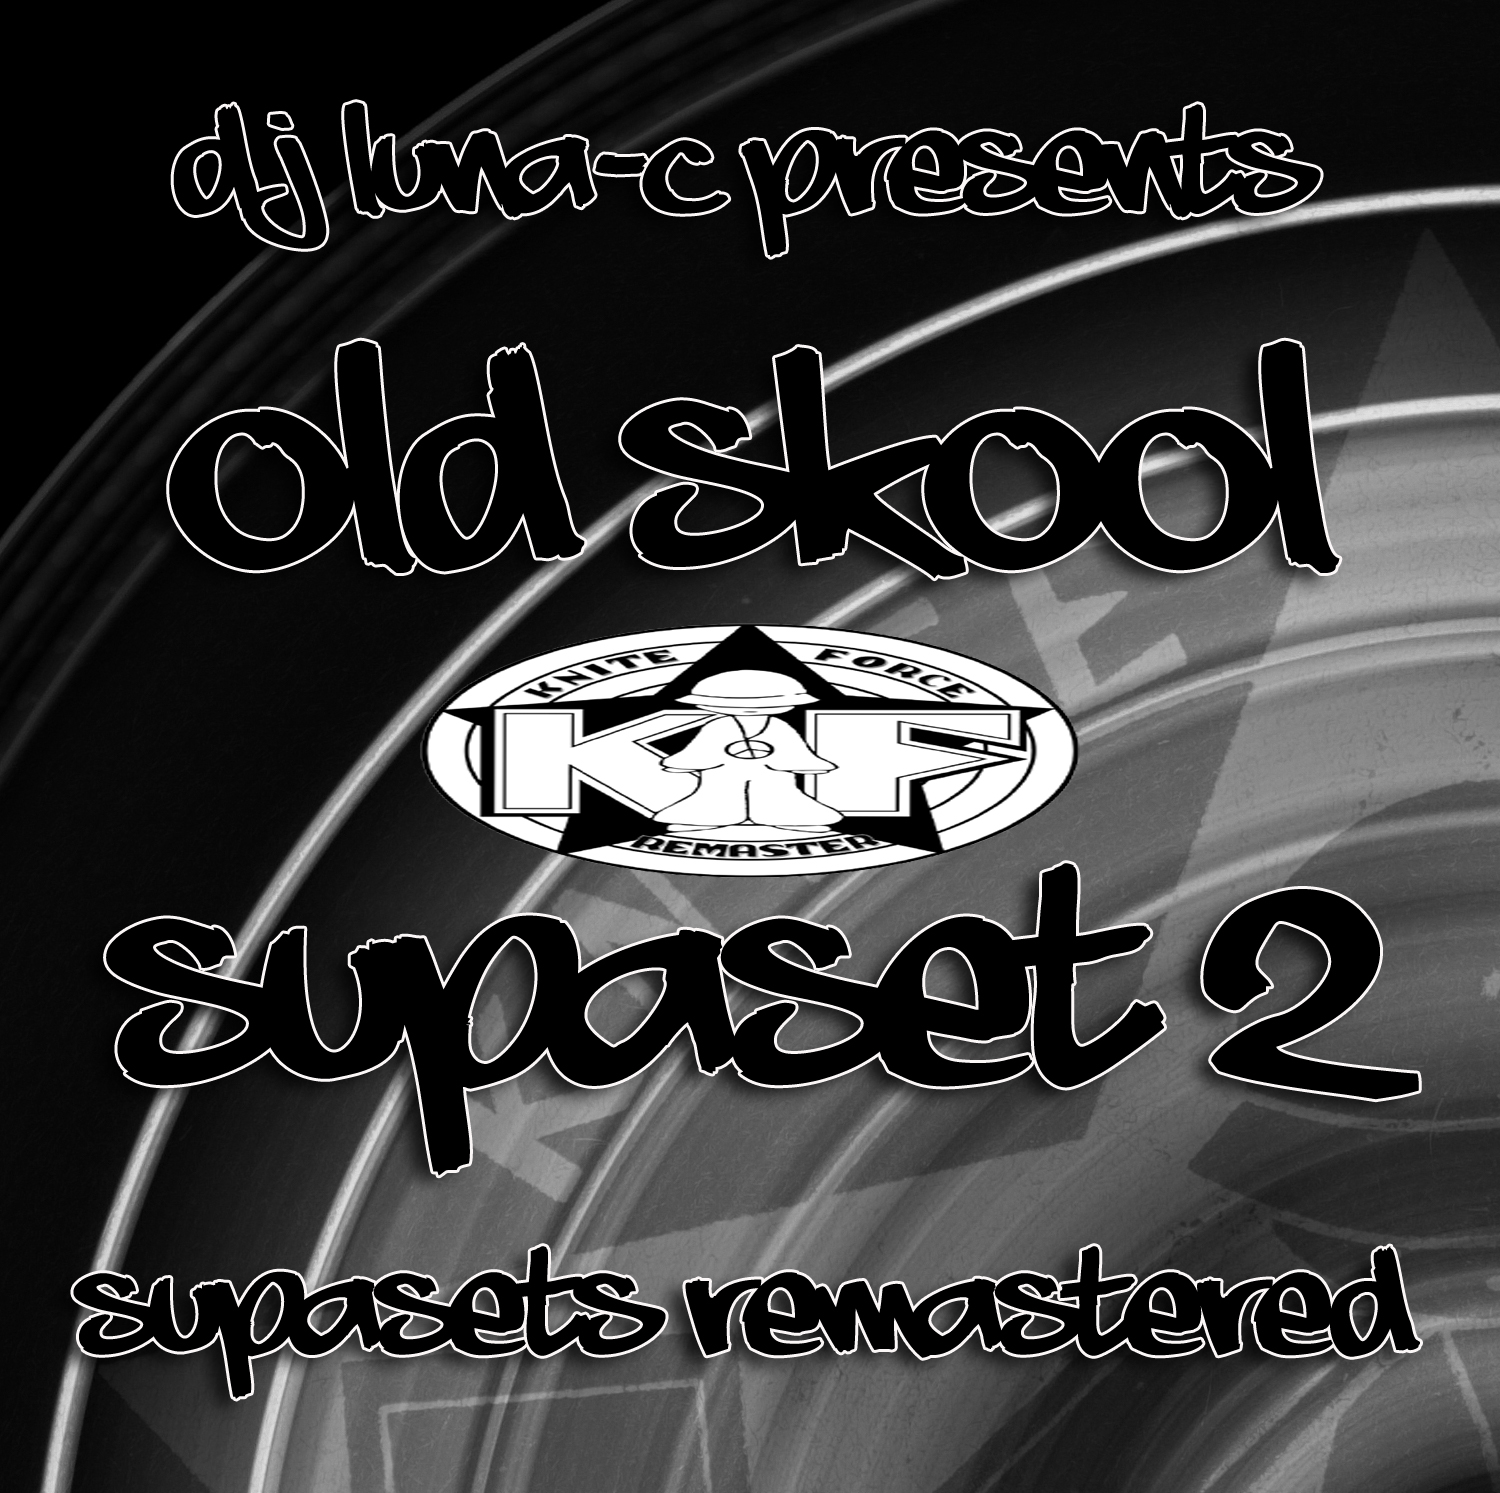 [KFSSOS02] Luna-C - Old Skool Supaset Part Two (Digital Only)